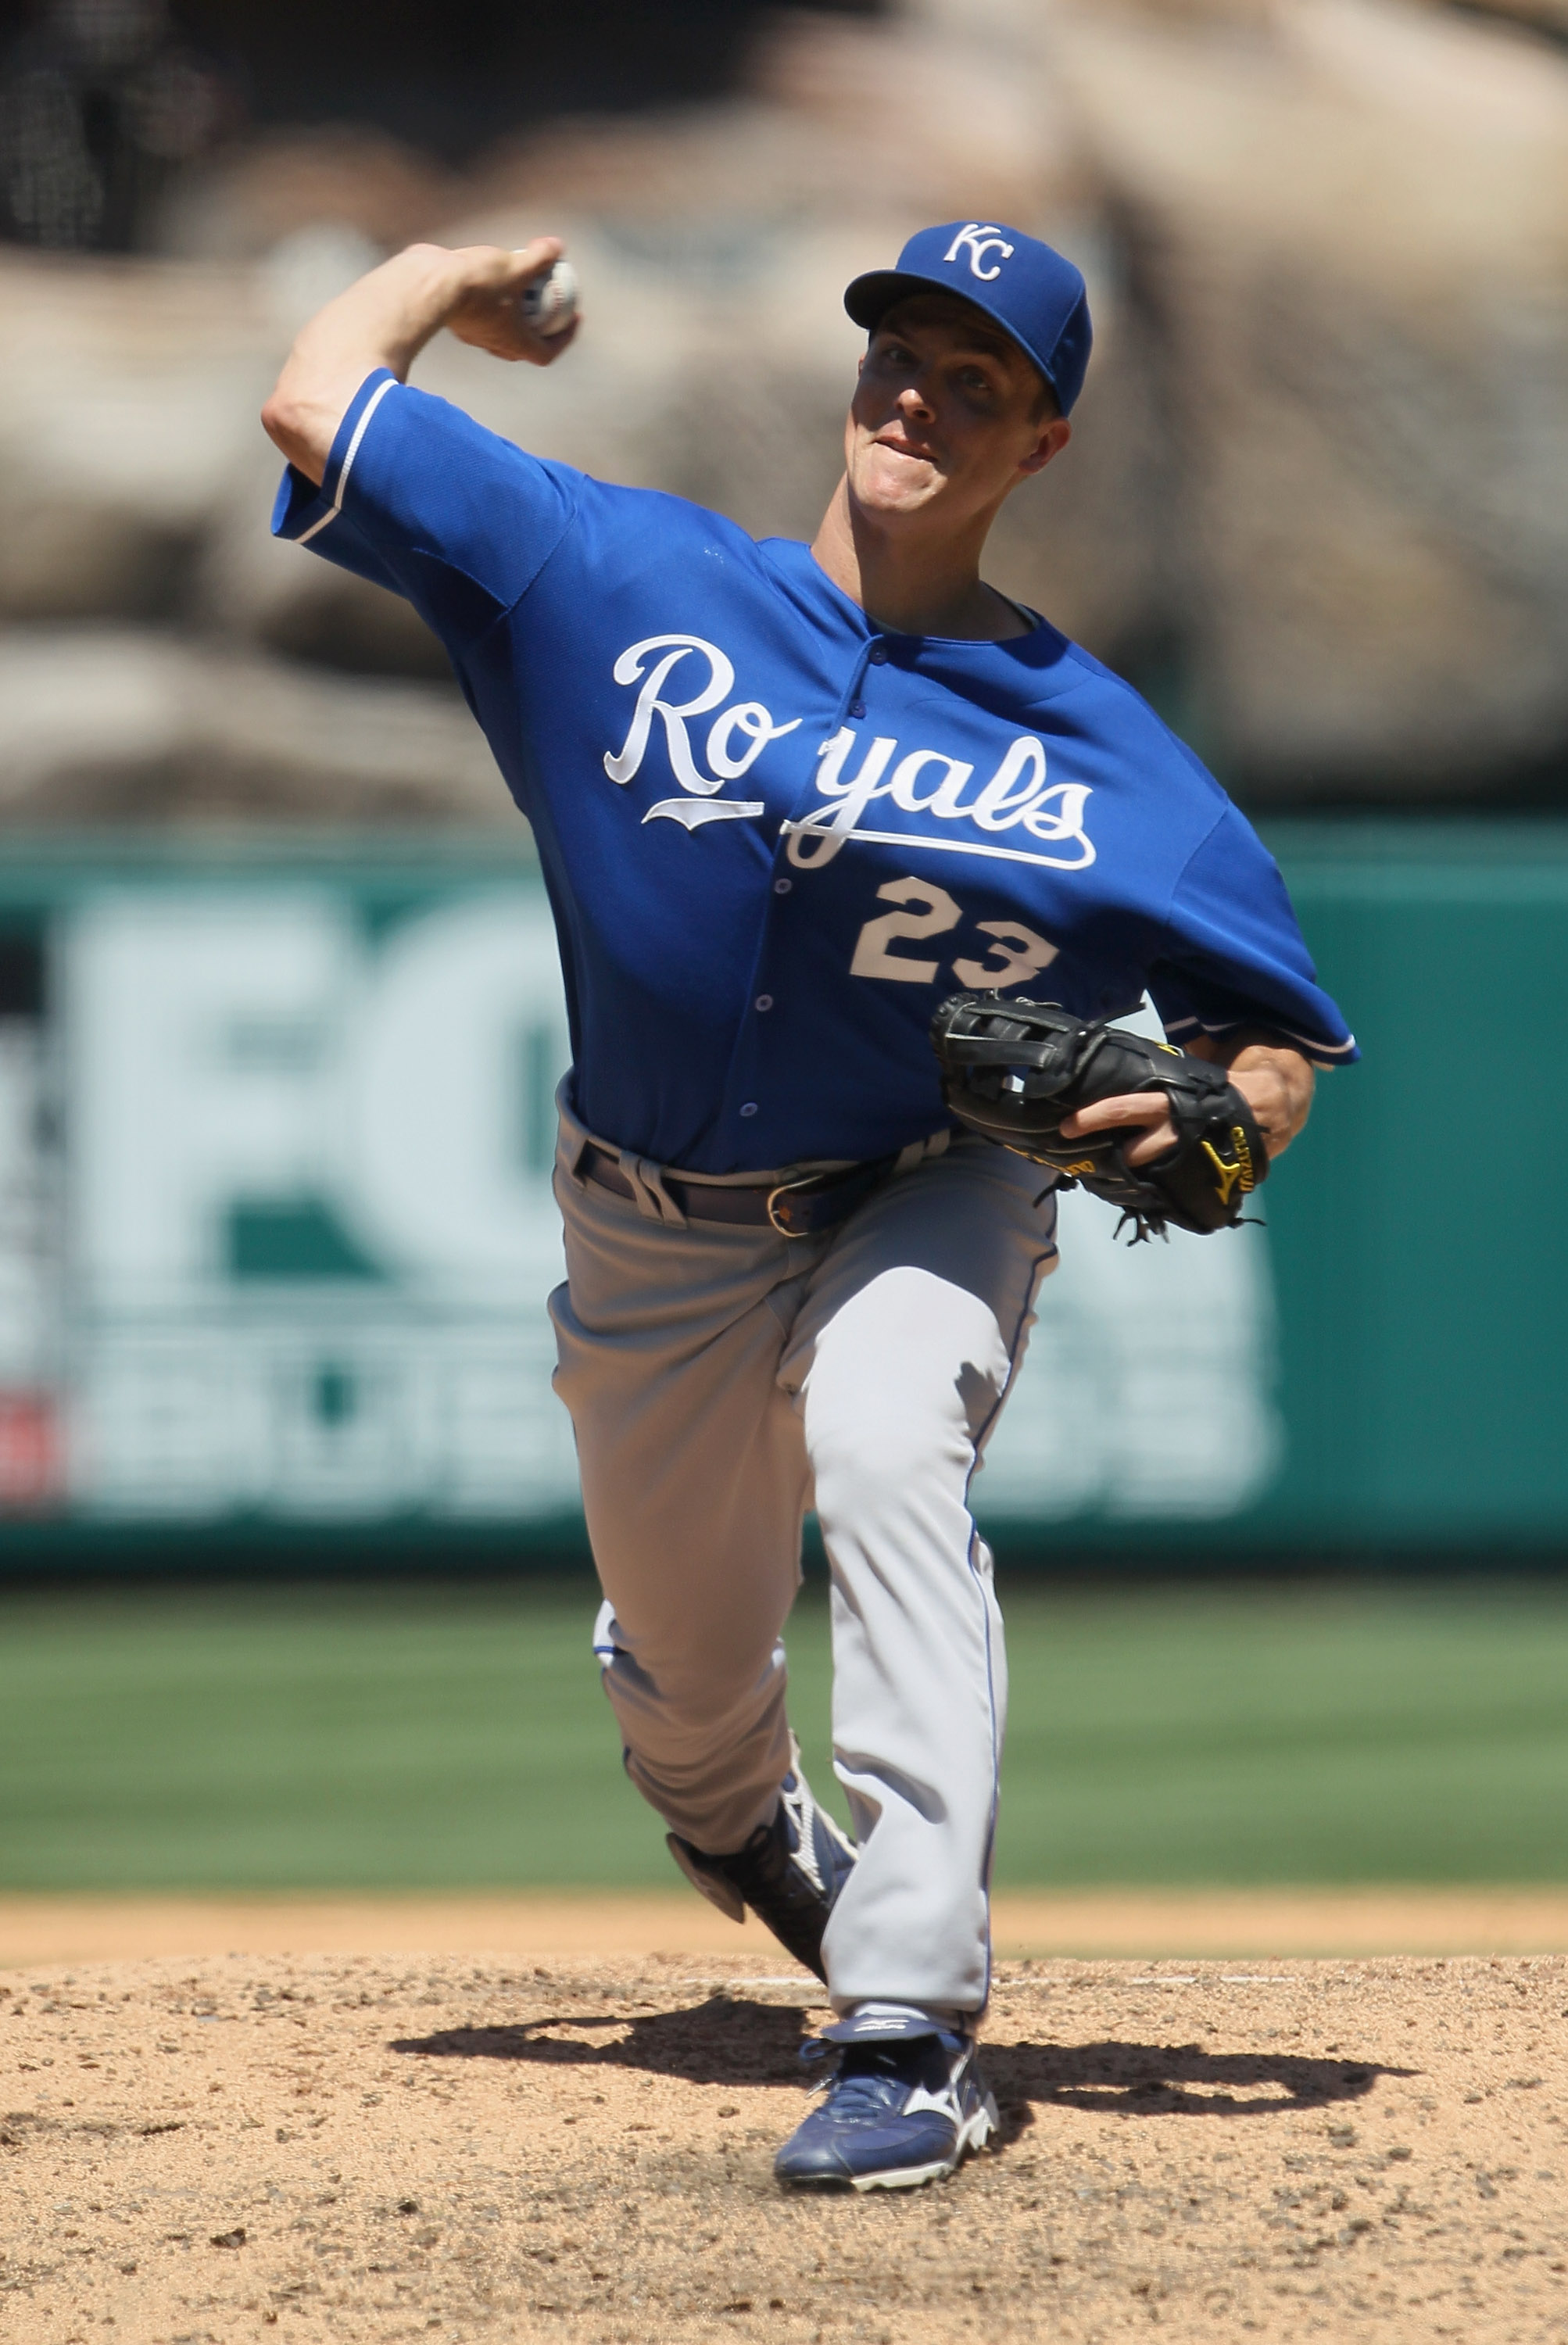 ANAHEIM, CA - AUGUST 11:  Zack Greinke #23 of the Kansas City Royals pitches against the Los Angeles Angels of Anaheim in the sixth inning at Angel Stadium on August 11, 2010 in Anaheim, California. The Angels defeated the Royals 2-1 in ten innings.  (Pho